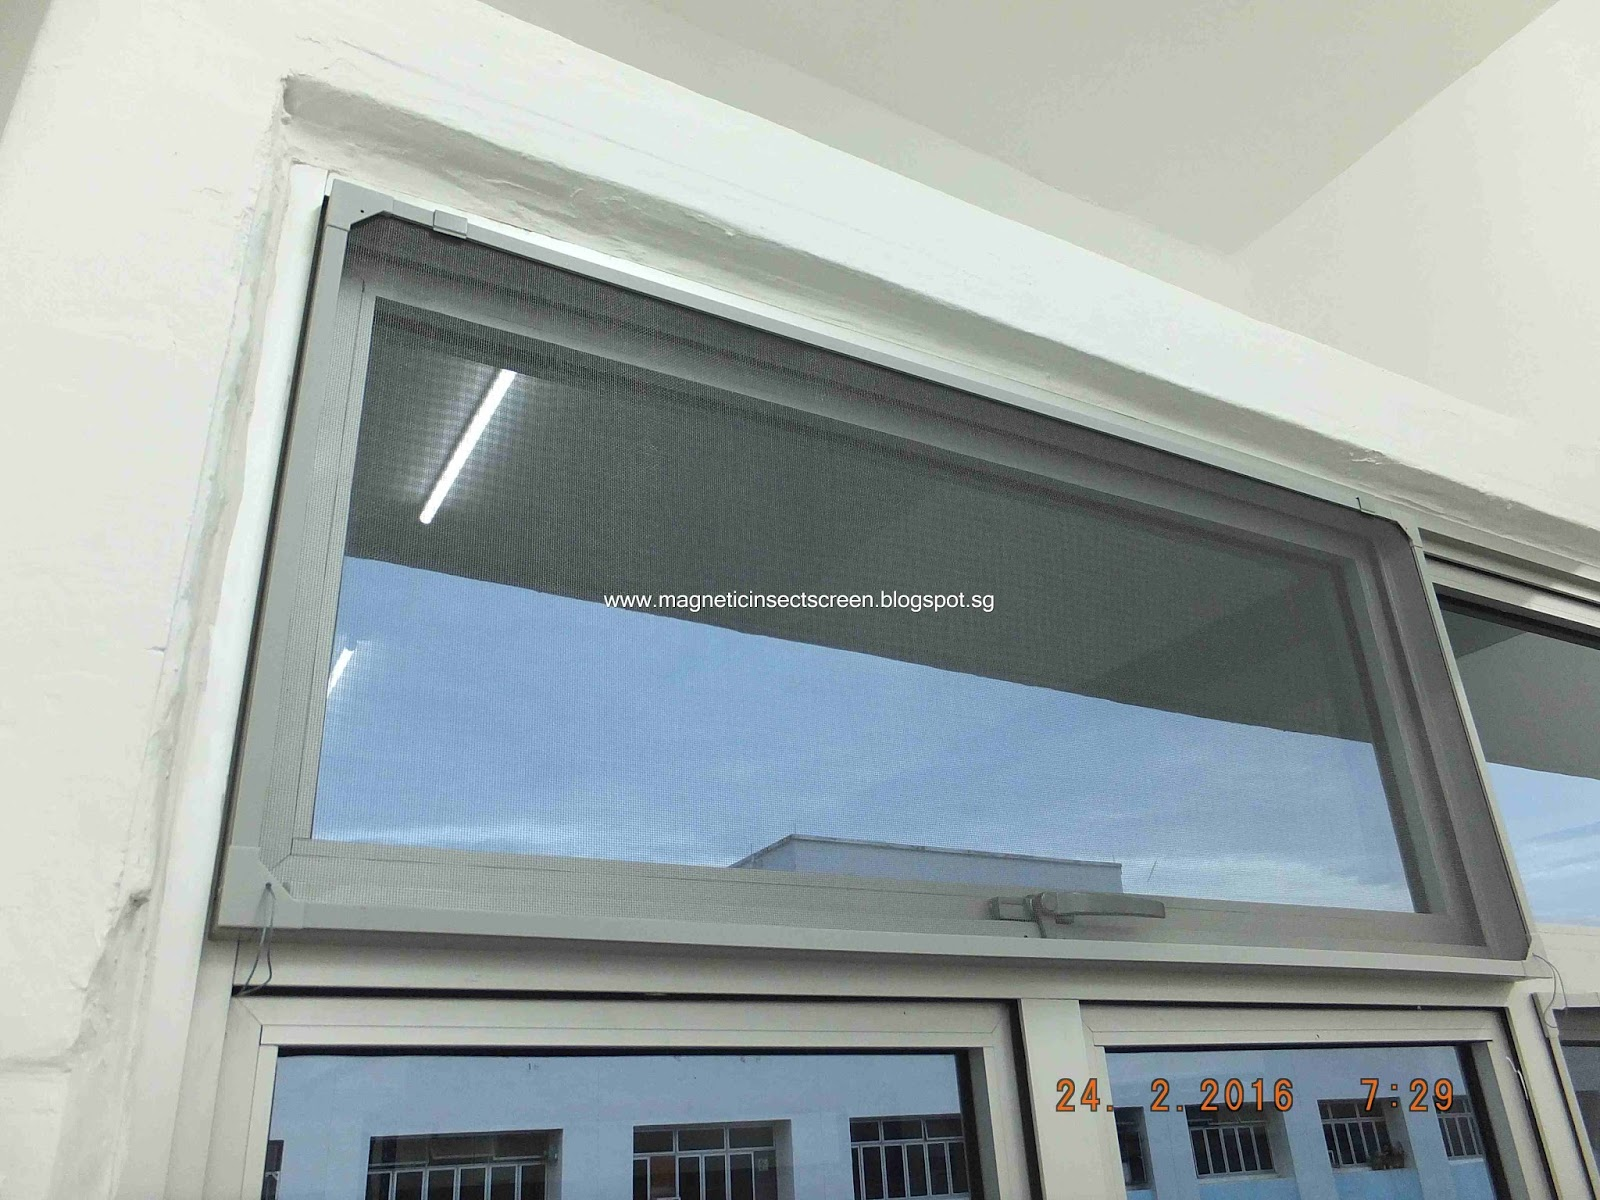 Diy magnetic insect screen singapore windows with protruding handle - The house with protruding windows ...